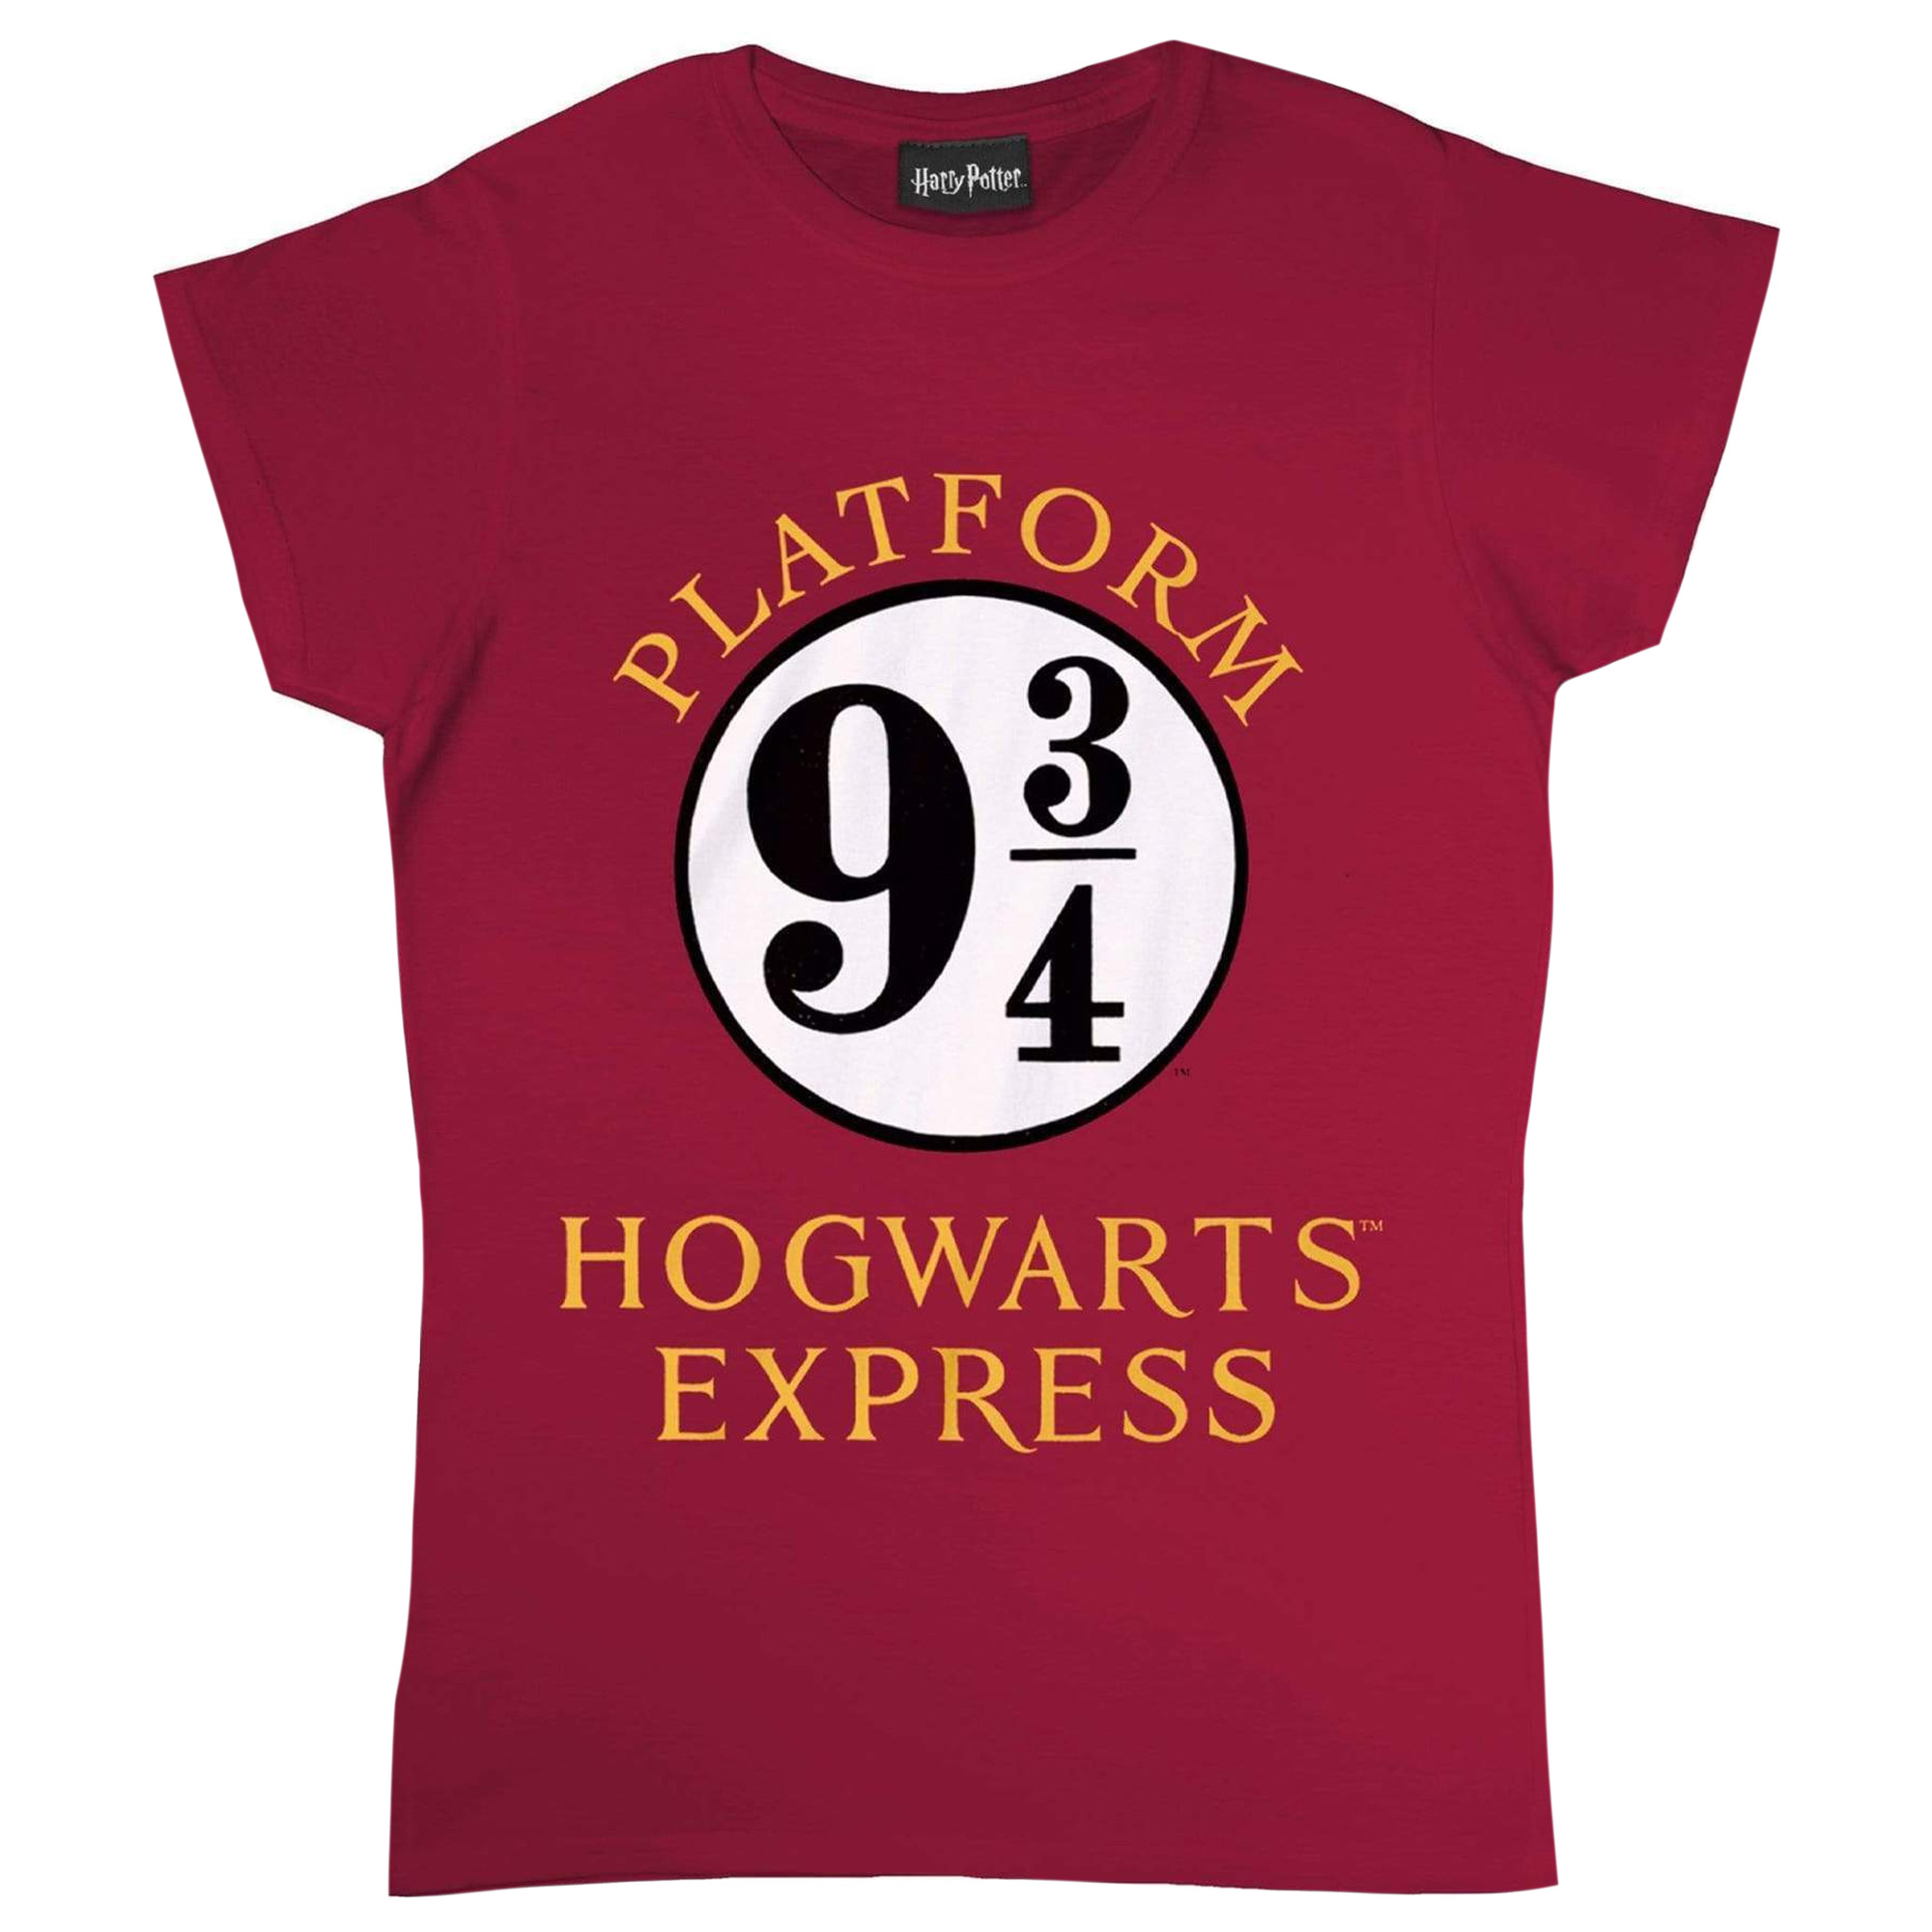 Harry Potter Womens/Ladies Hogwarts Express Fitted T-Shirt (XXL) (Burgundy/White)